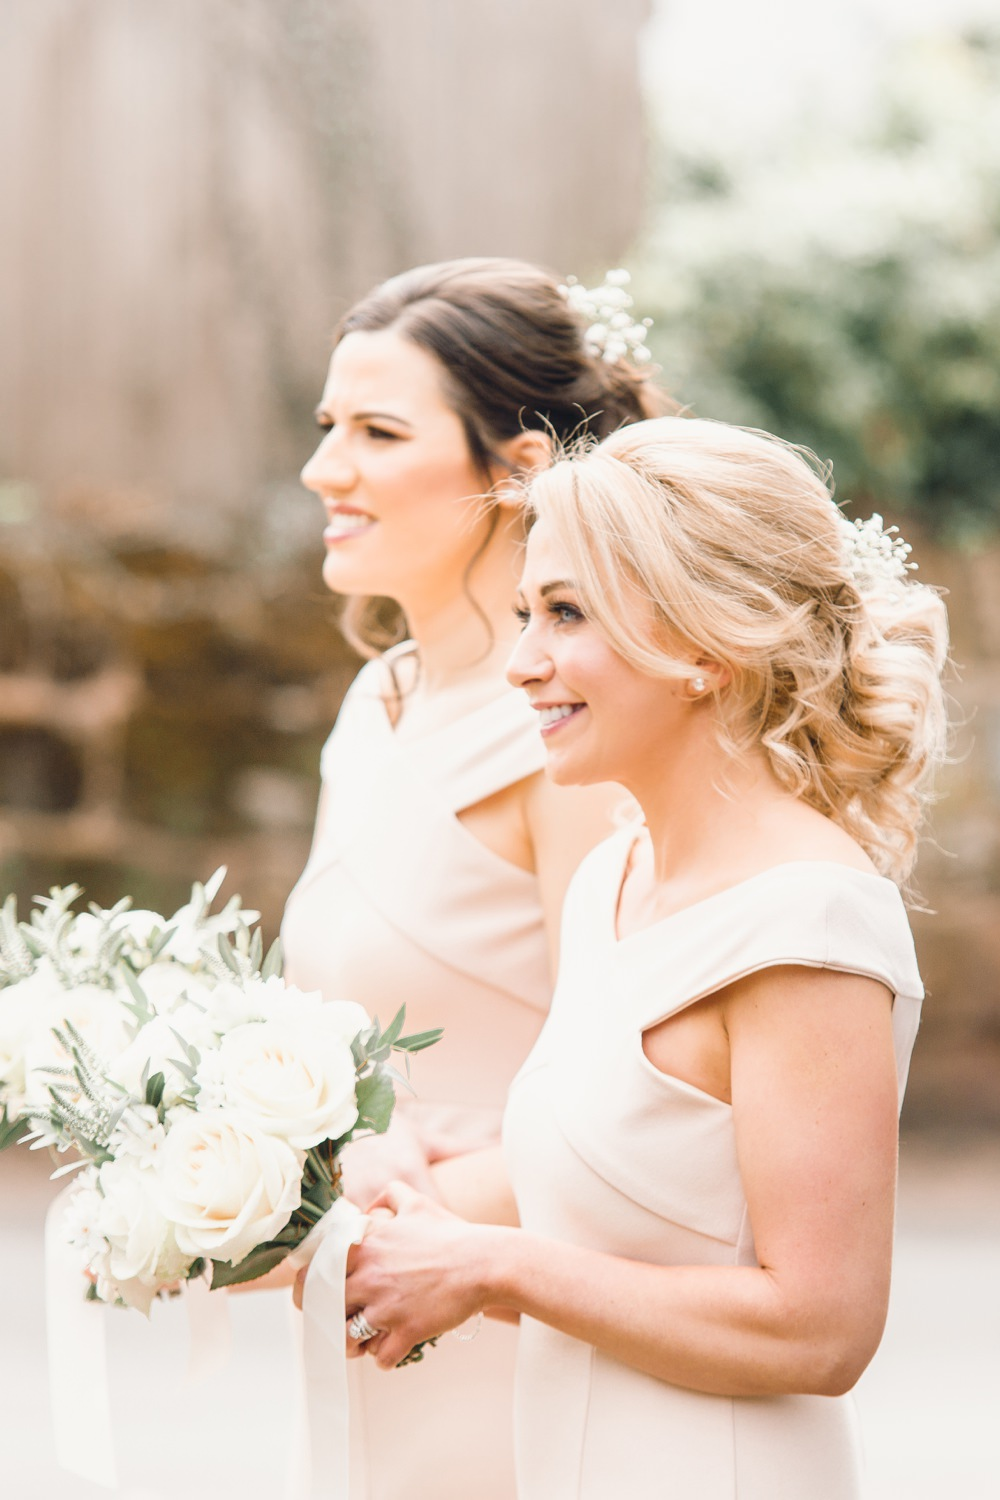 Bridesmaids Dress Dresses Pale Pink Long Maxi Hair Style Llanrhaeadr Springs Wedding Jessica Reeve Photography